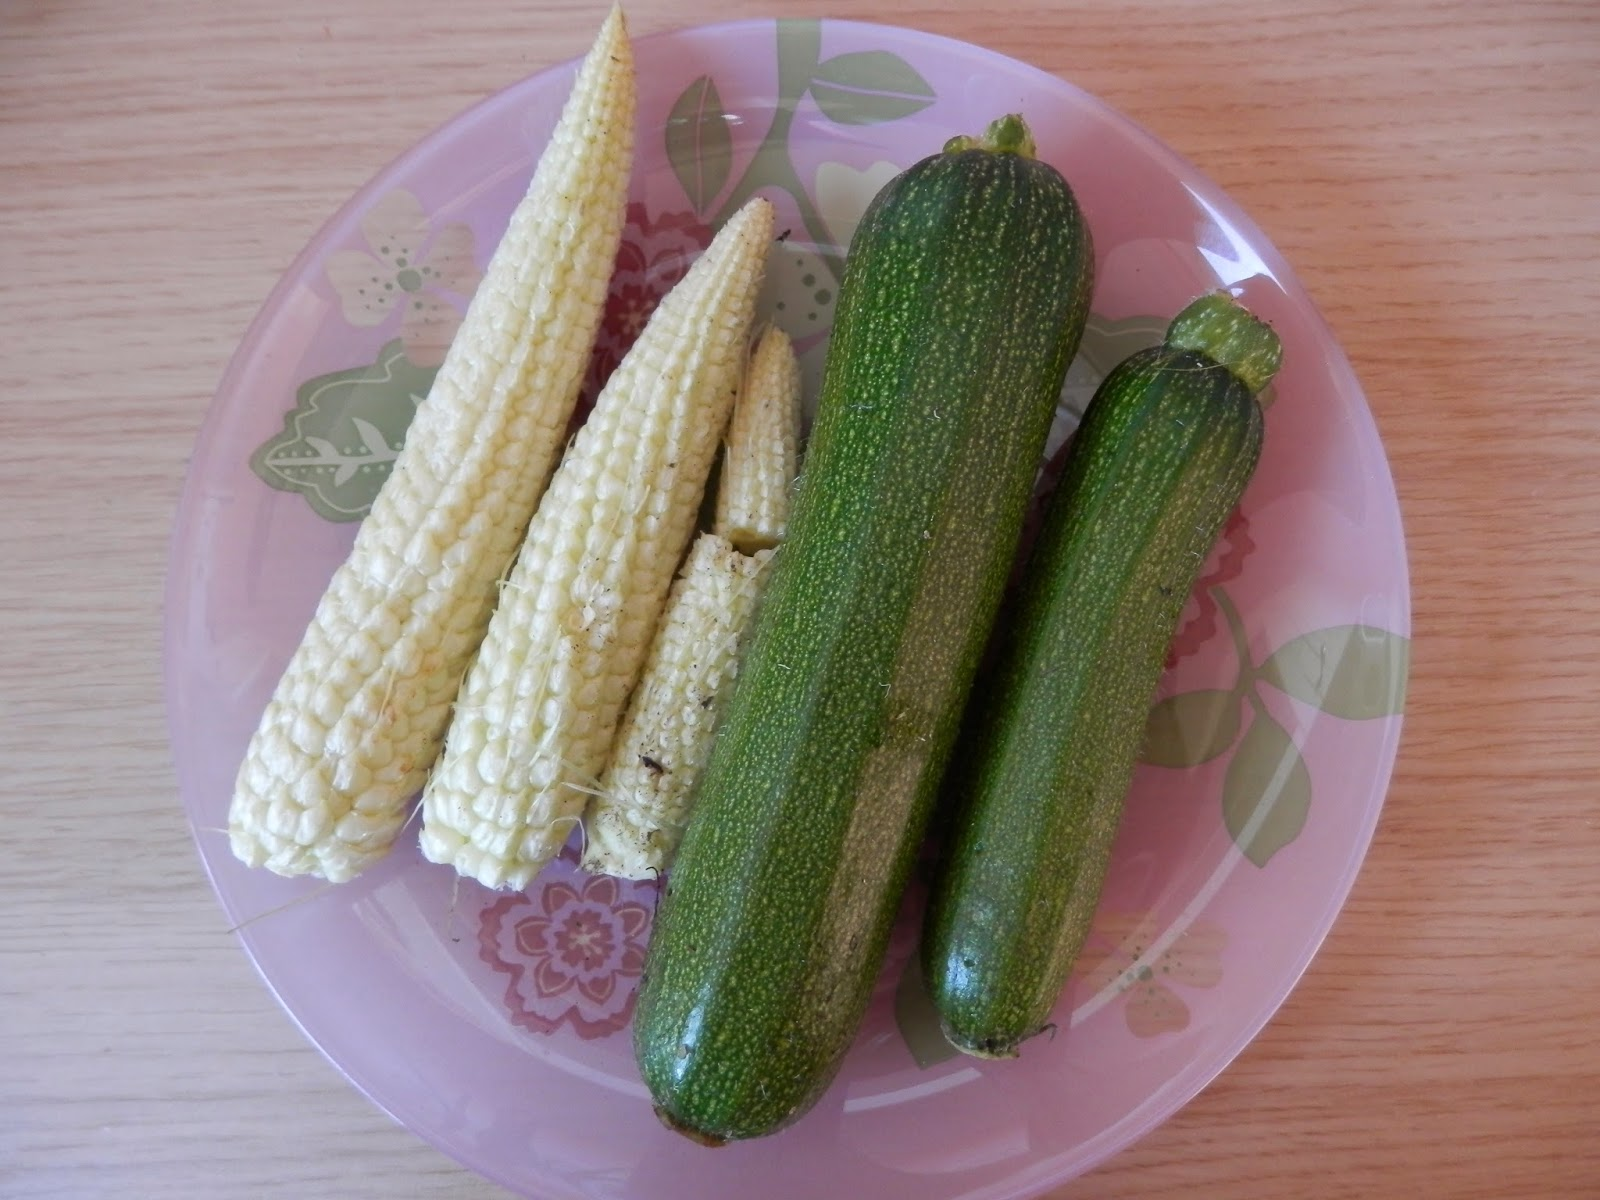 My home grown harvest this month, lots of courgettes, sweetcorn, broad beans and rainbow chard. secondhandsusie.blogspot.com